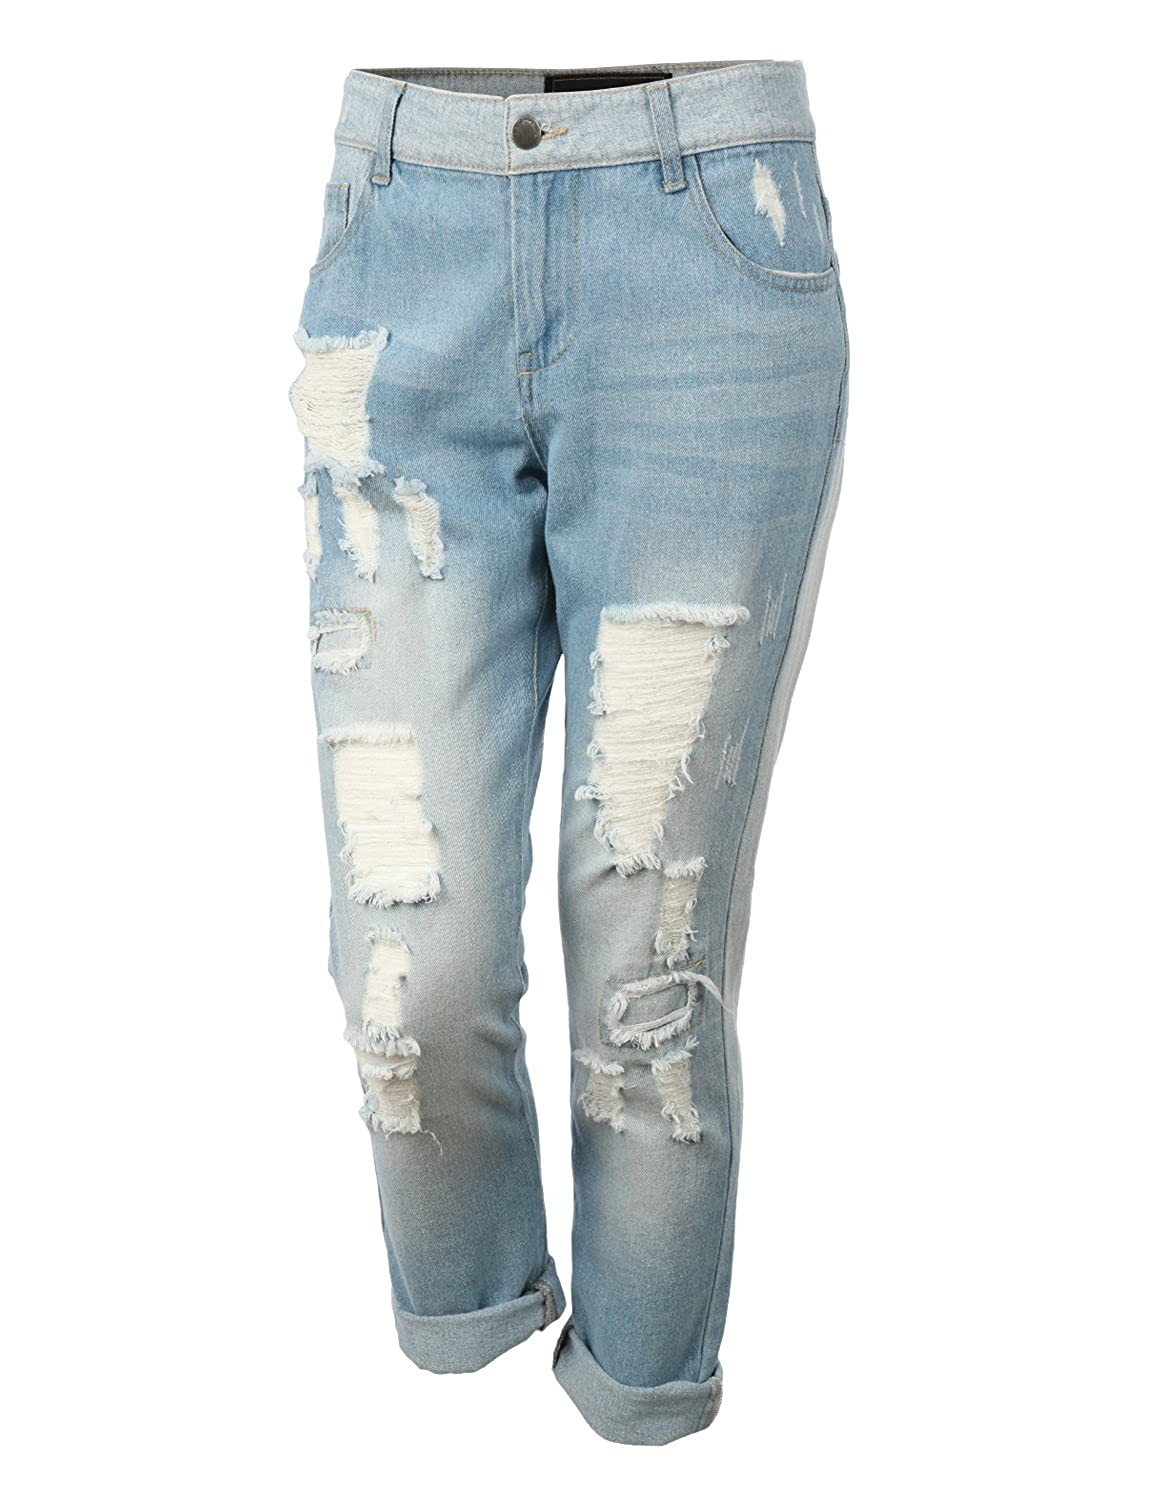 RubyK Womens Lightweight Distressed Ripped Roll Up Boyfriend Jeans roll up ankle jeans